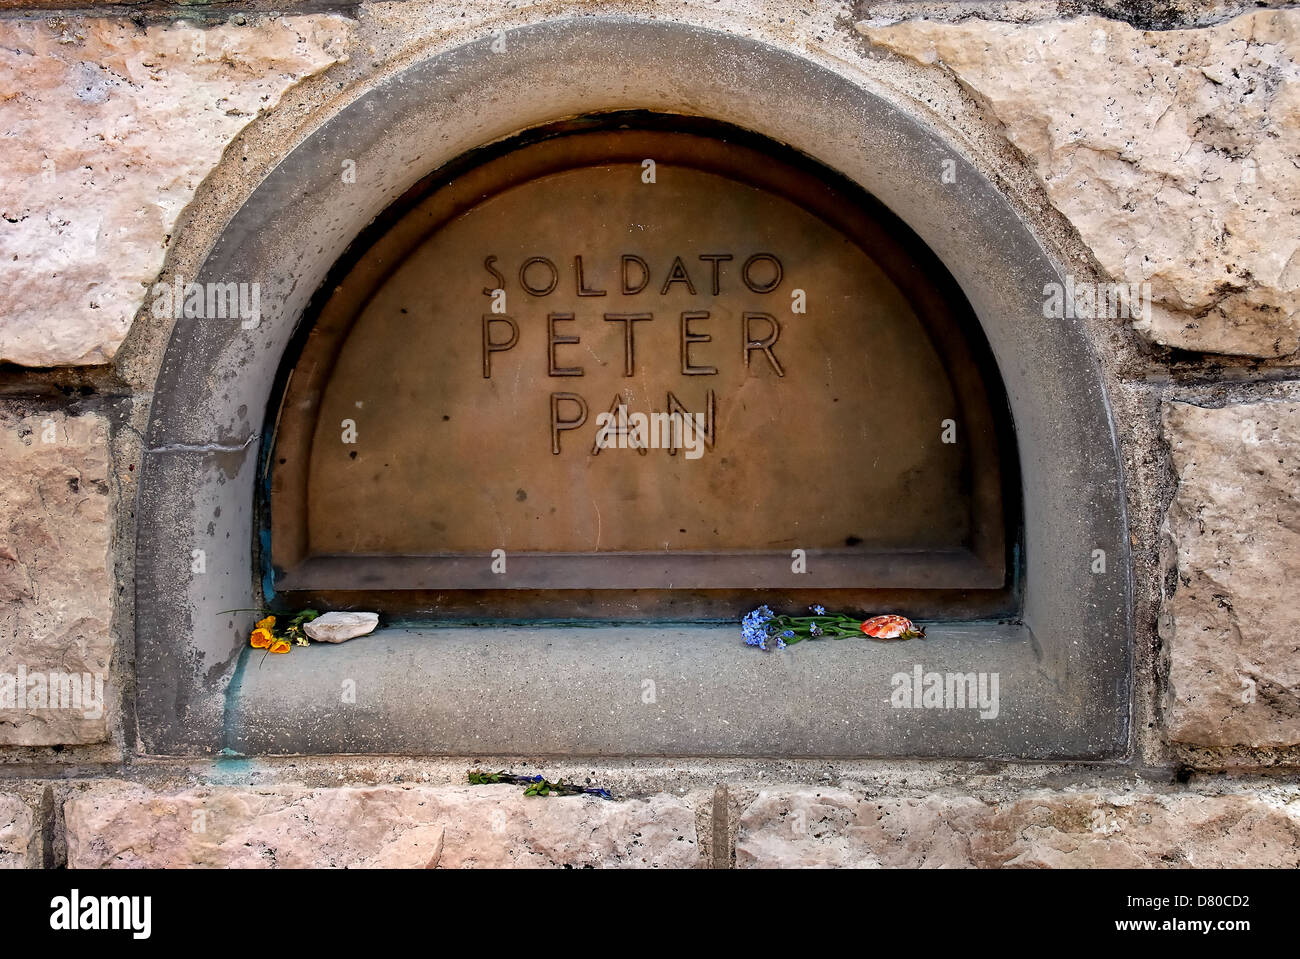 WWI. Veneto, Italy: Mount Grappa, Austro-Hungarian Ossuary : the soldier Peter Pan's grave. - Stock Image